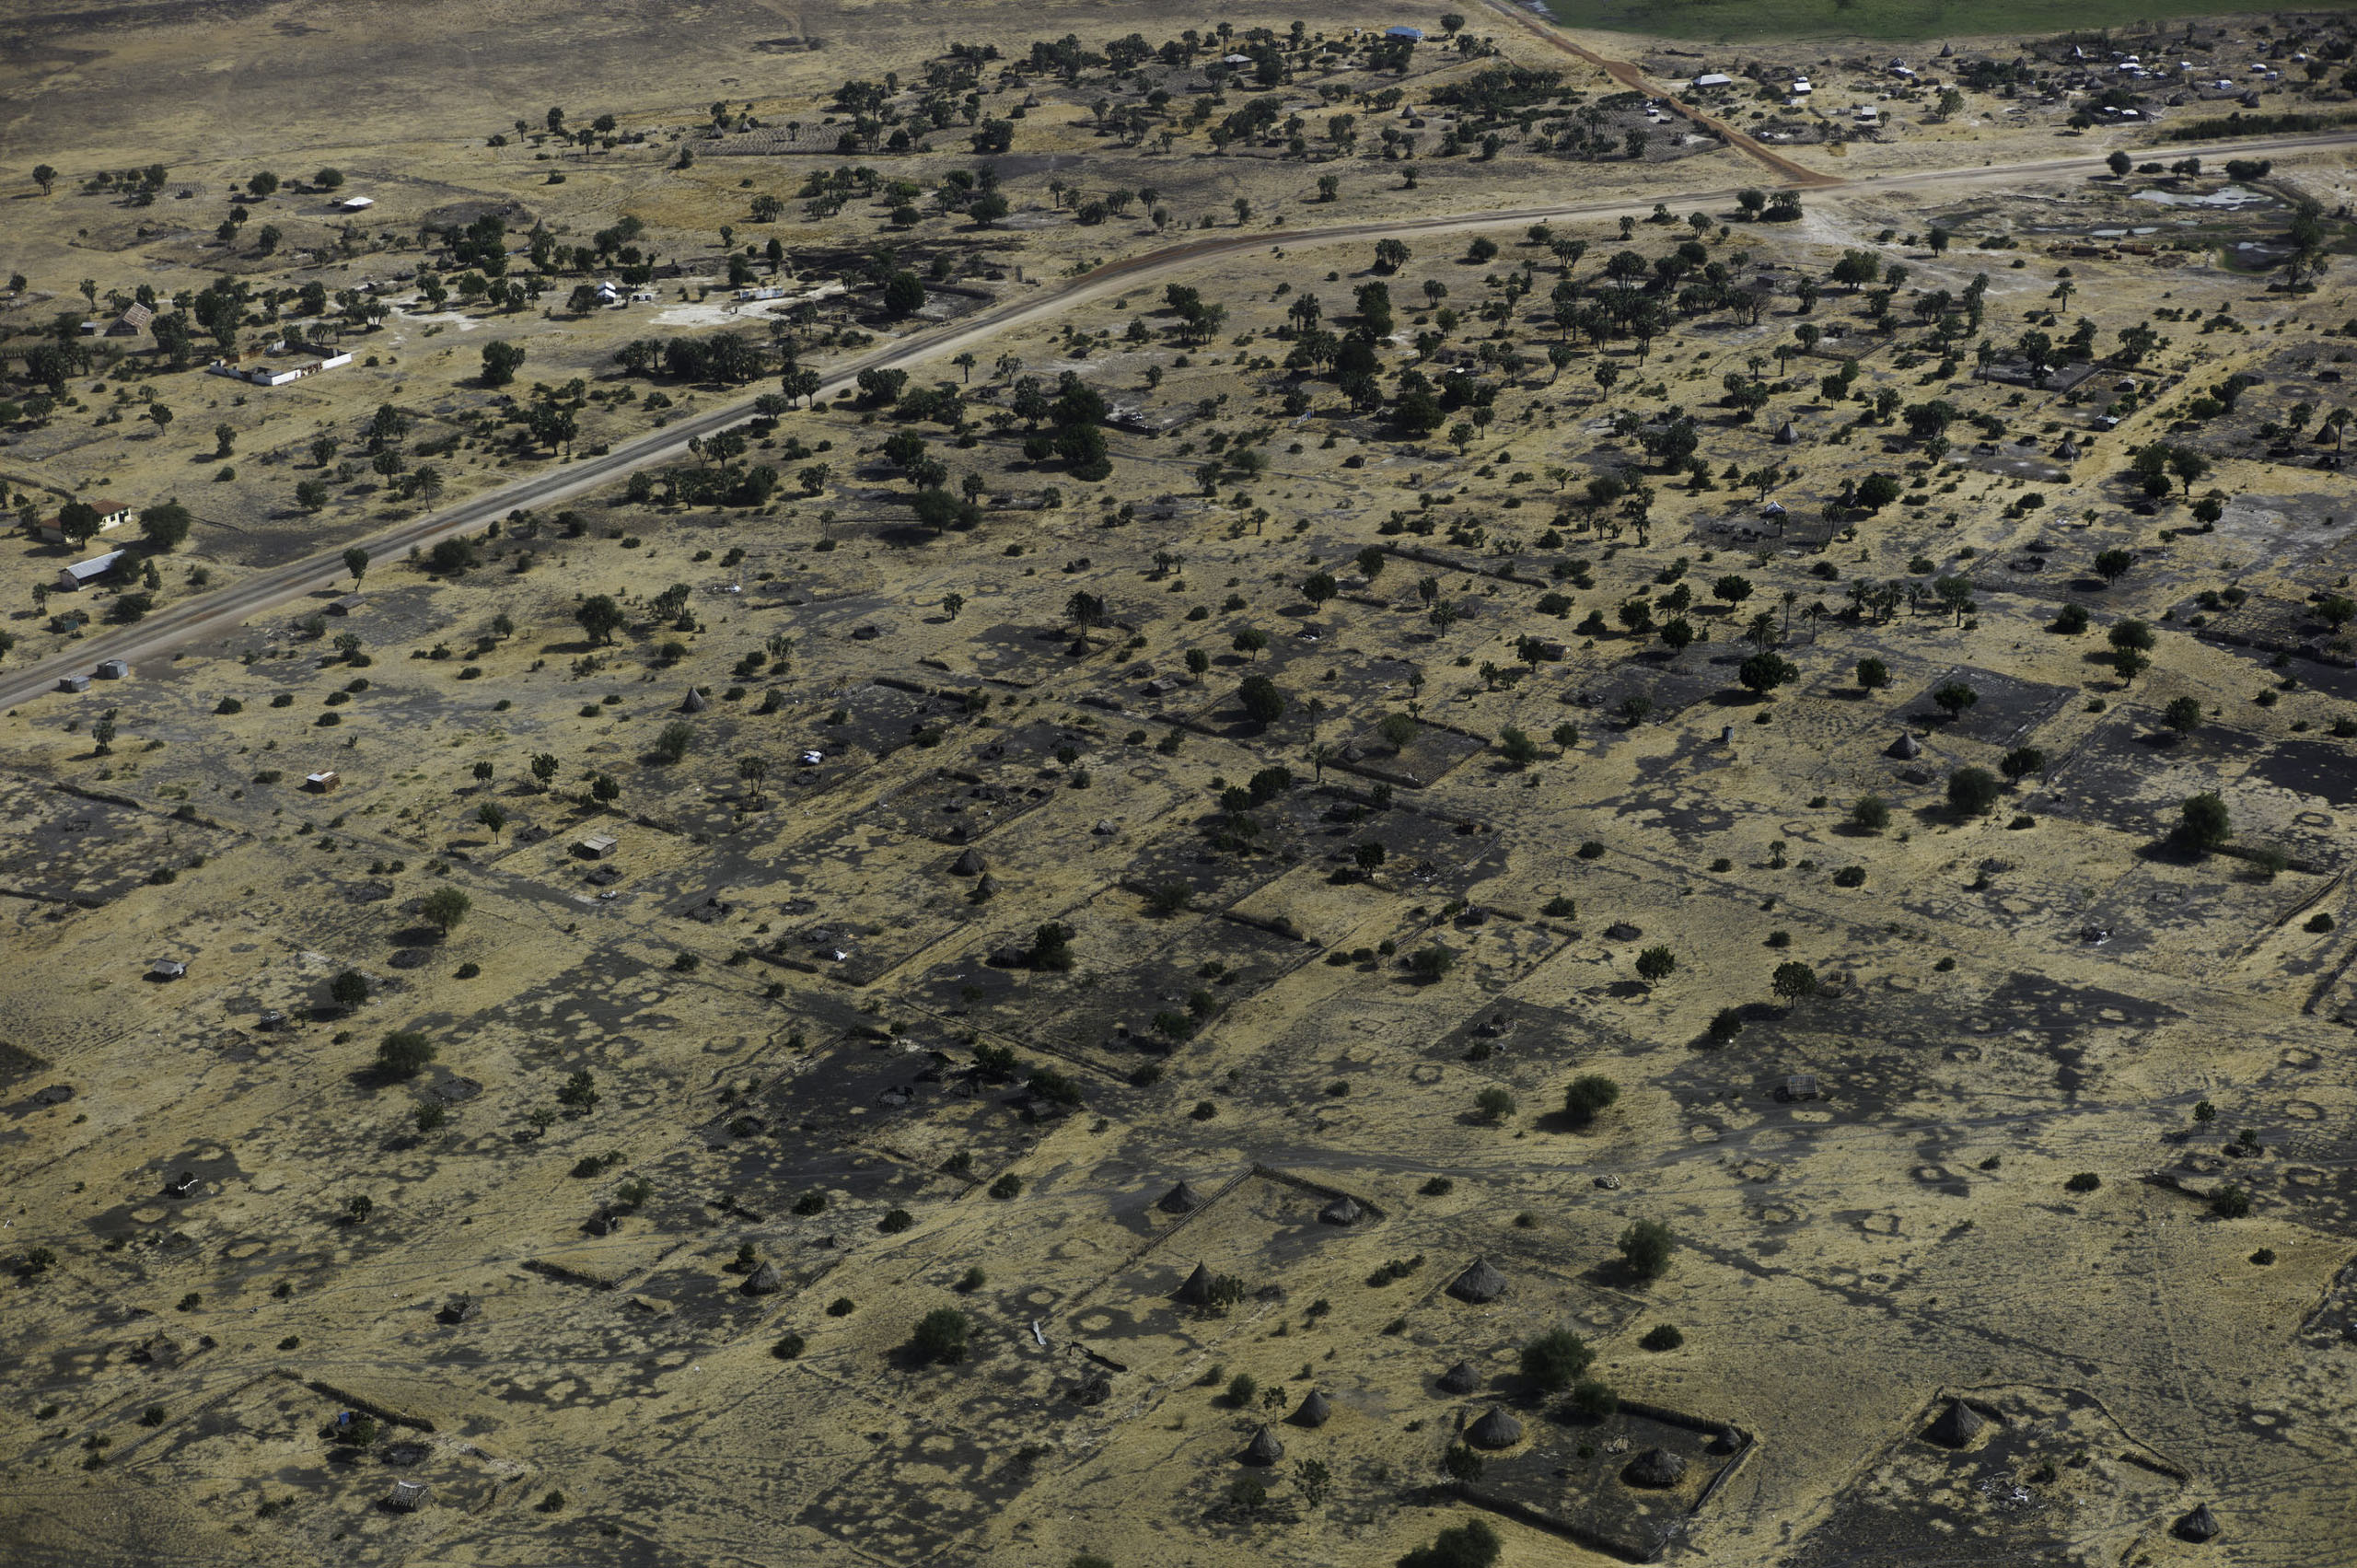 An aerial view of the empty and completely destroyed town of Leer, Unity State, South Sudan.